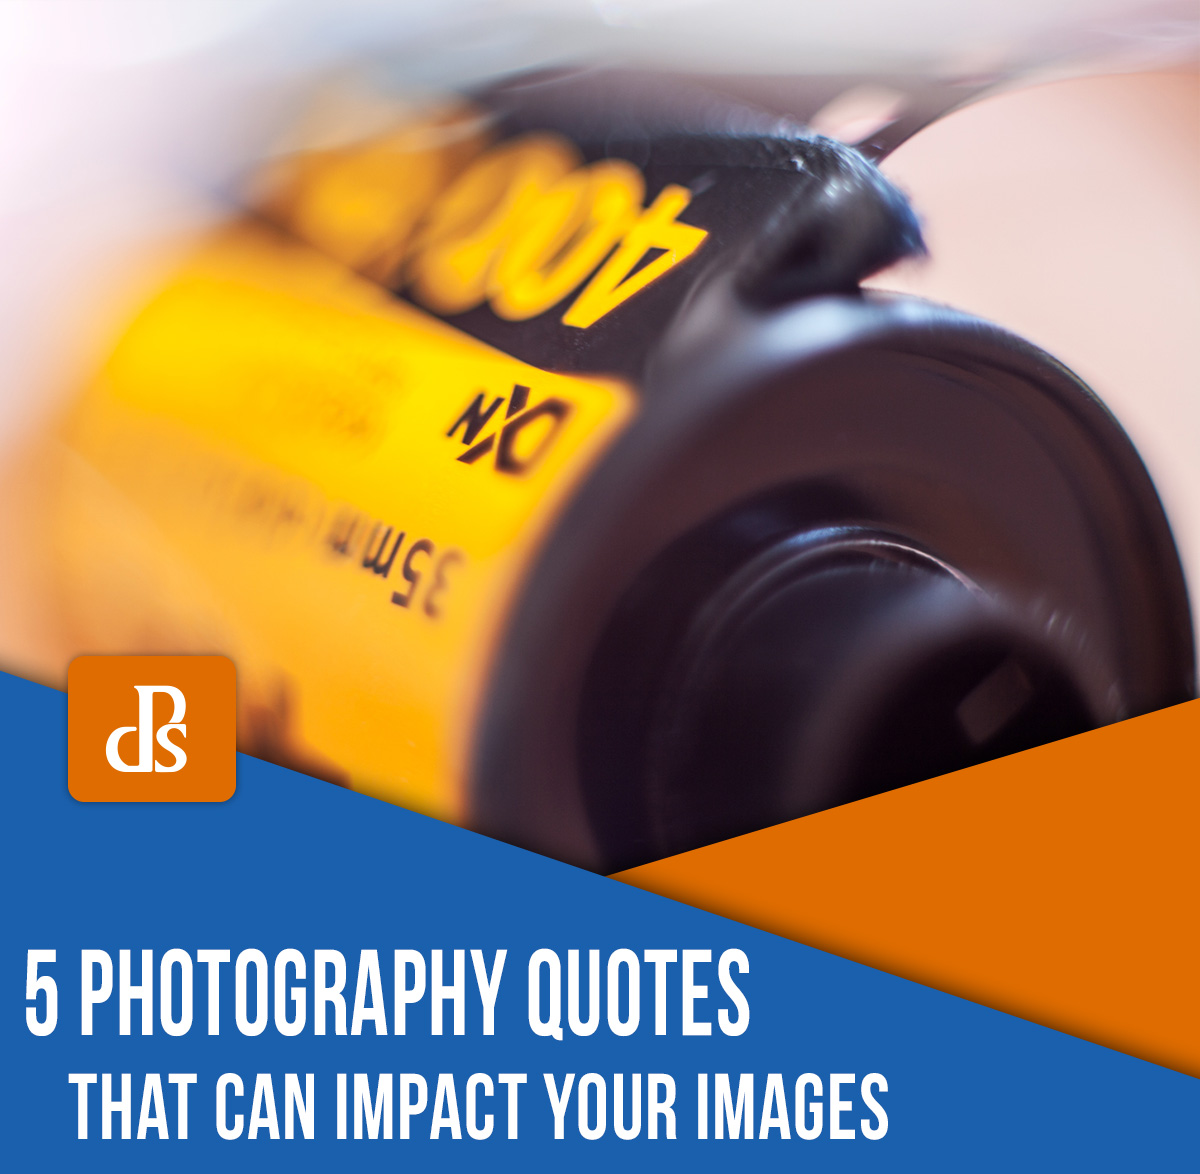 How These 5 Photography Quotes Can Impact Your Photographic Practice